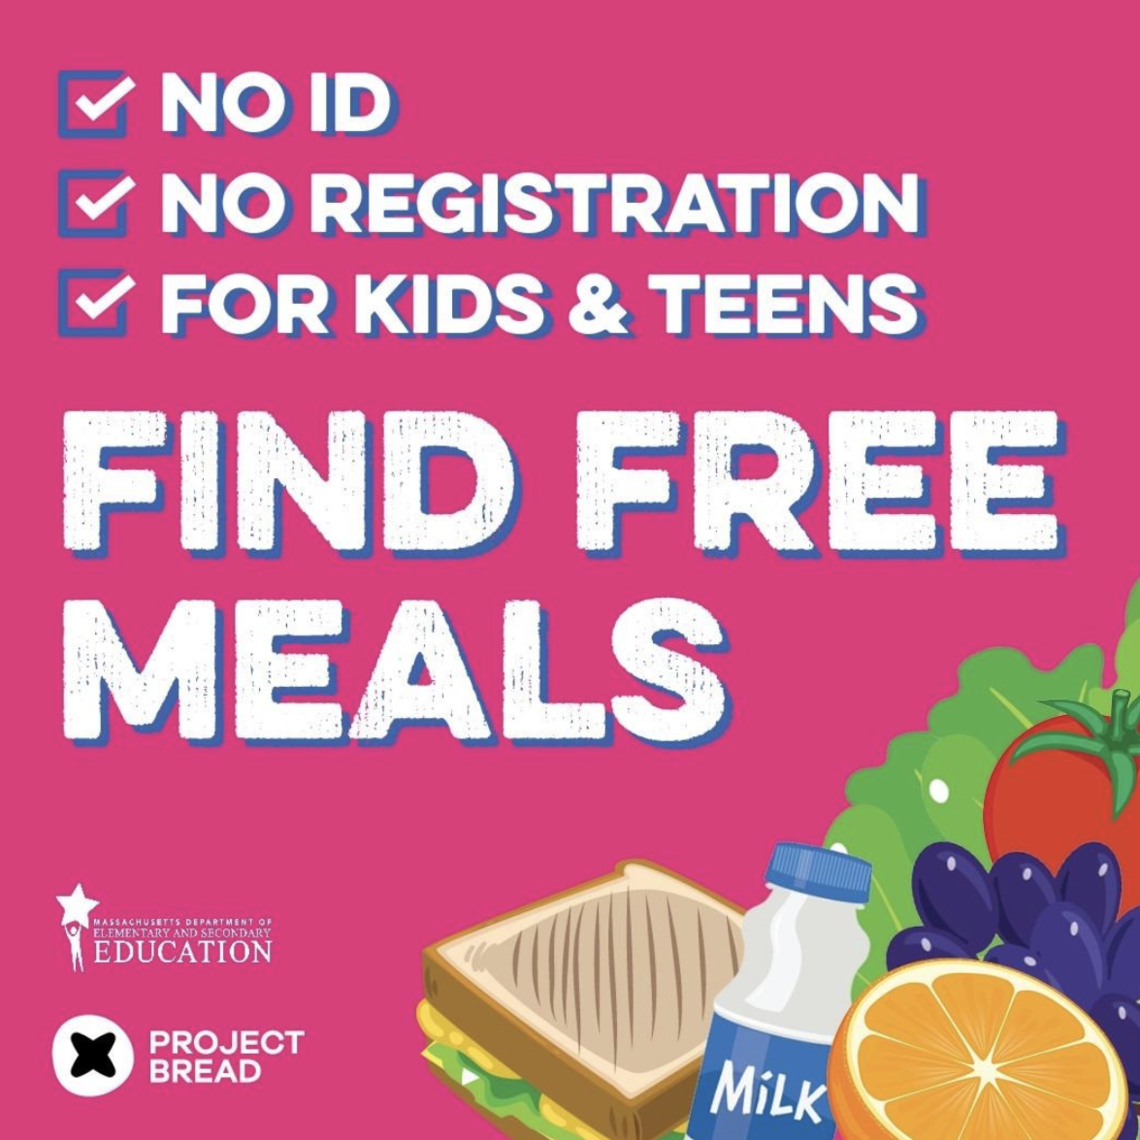 Find free meals for kids